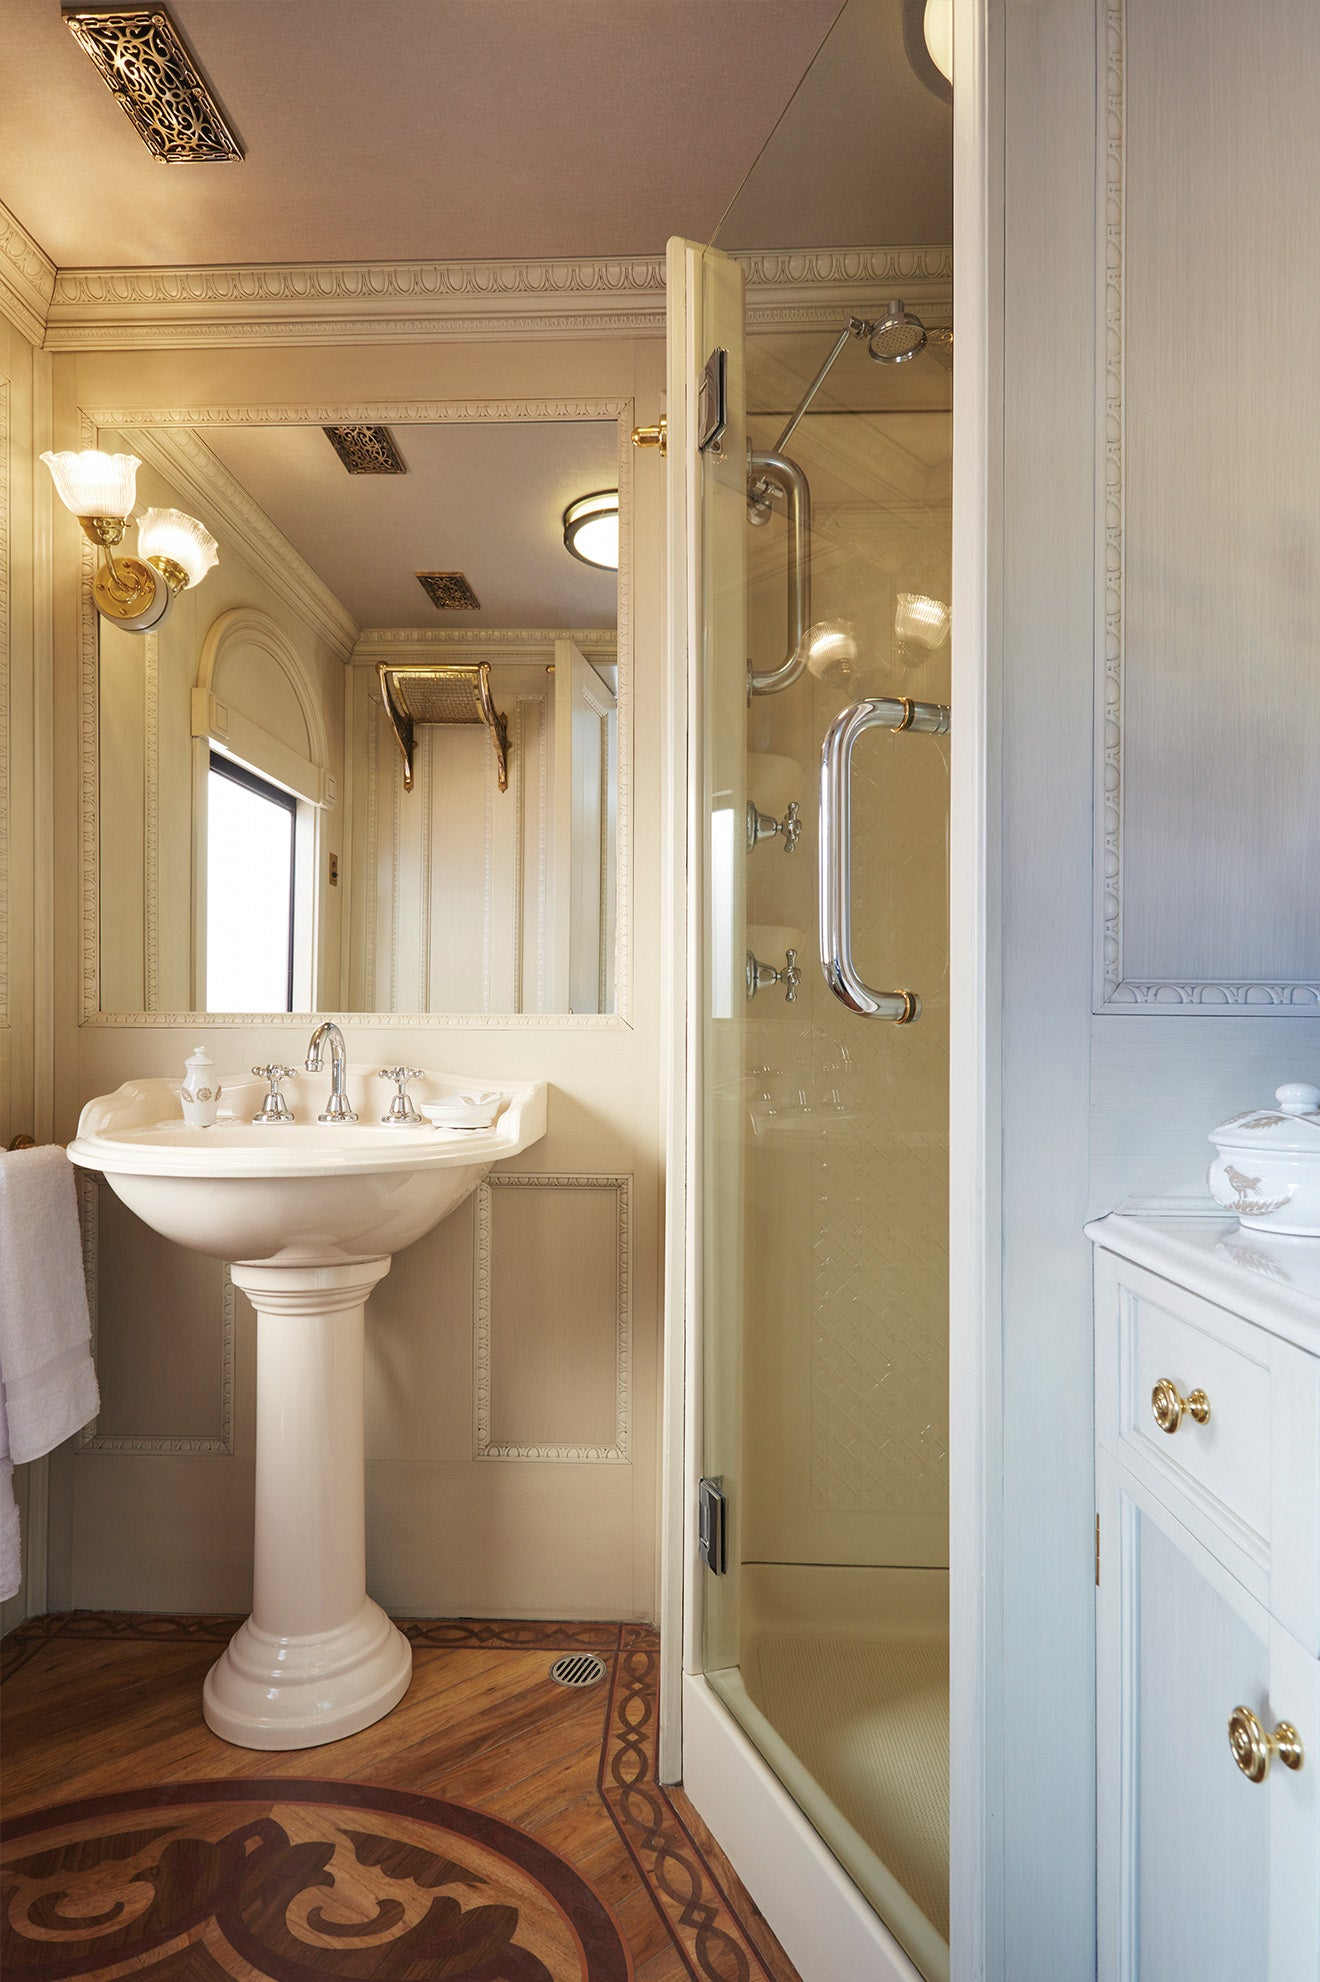 Bathroom in the Belmond Andean Explorer, South Africa's first luxury sleeper train